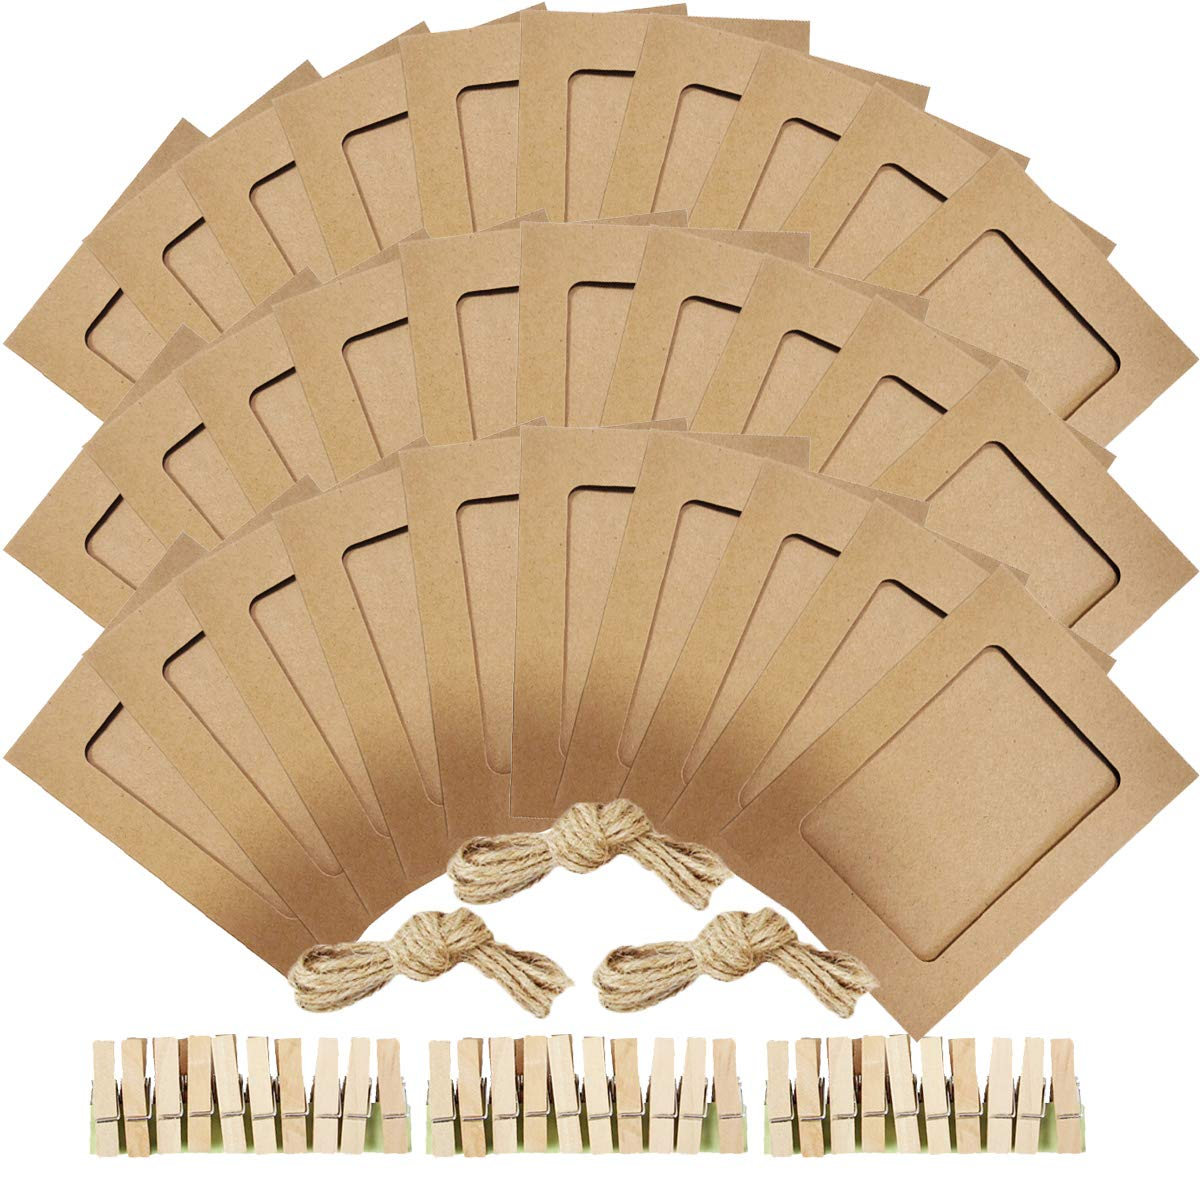 Novelty Bank Brown NOBBEE Paper Photo Frame 5x7 Kraft Paper Picture Frames 30 PCS DIY Cardboard Photo Frames with Wood Clips and Jute Twine